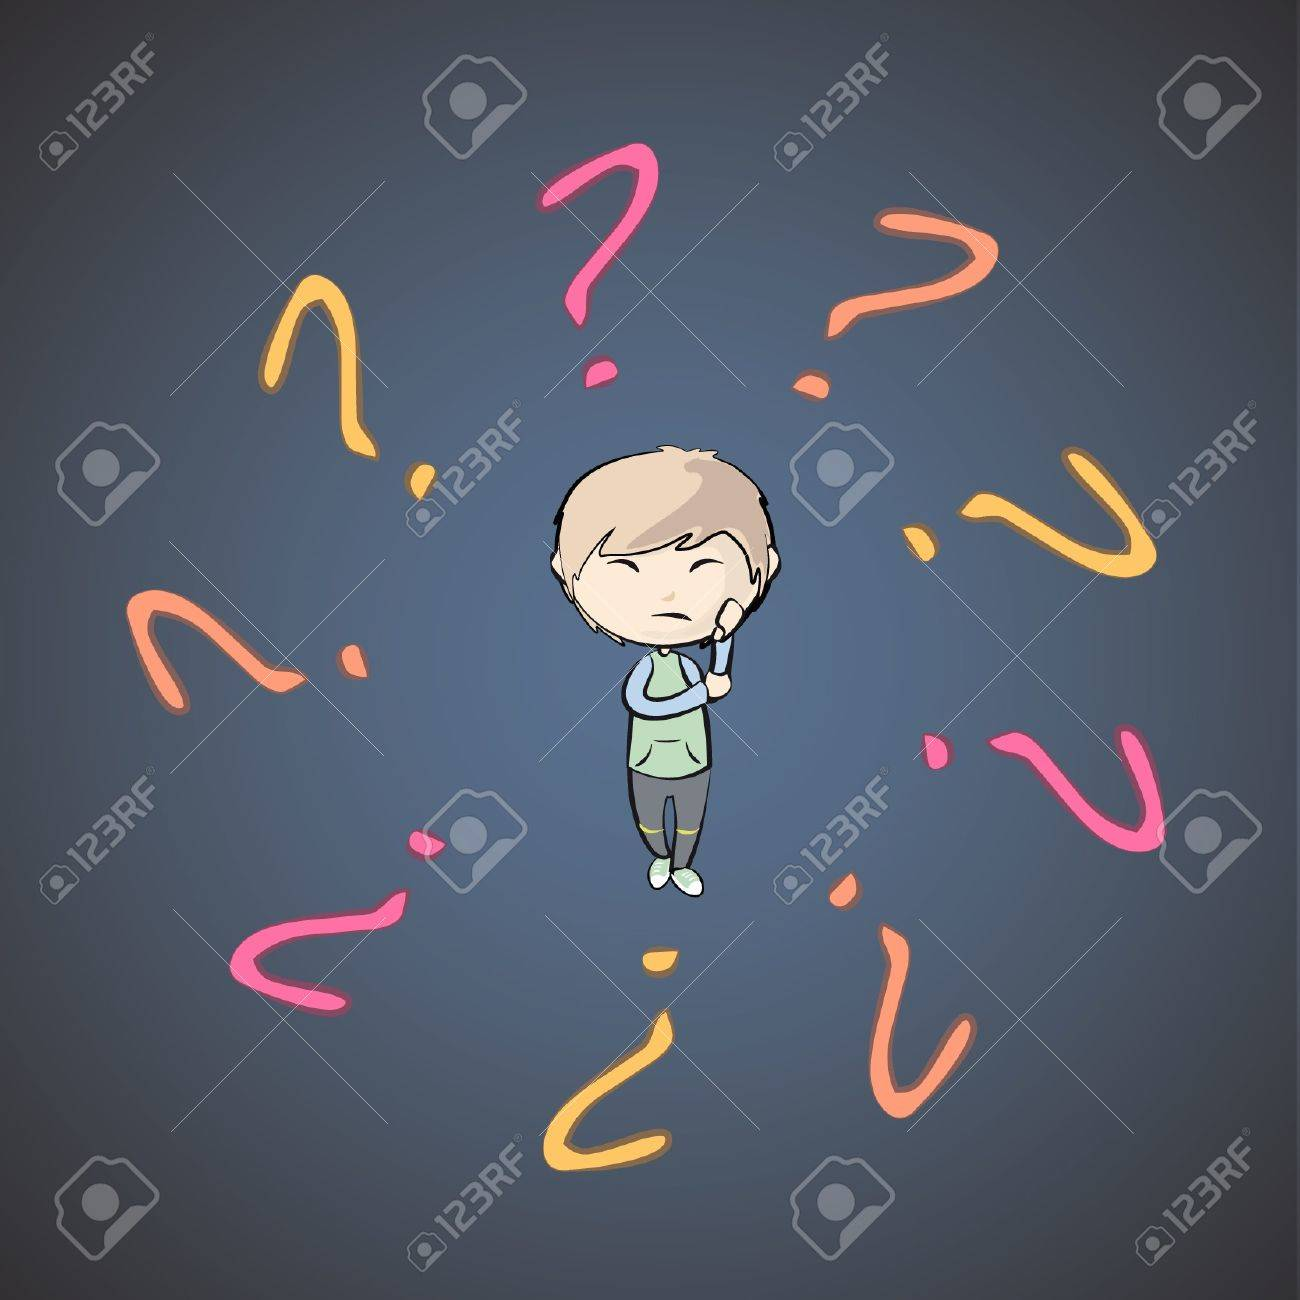 Boy surrounded by questions. Stock Vector - 16867494